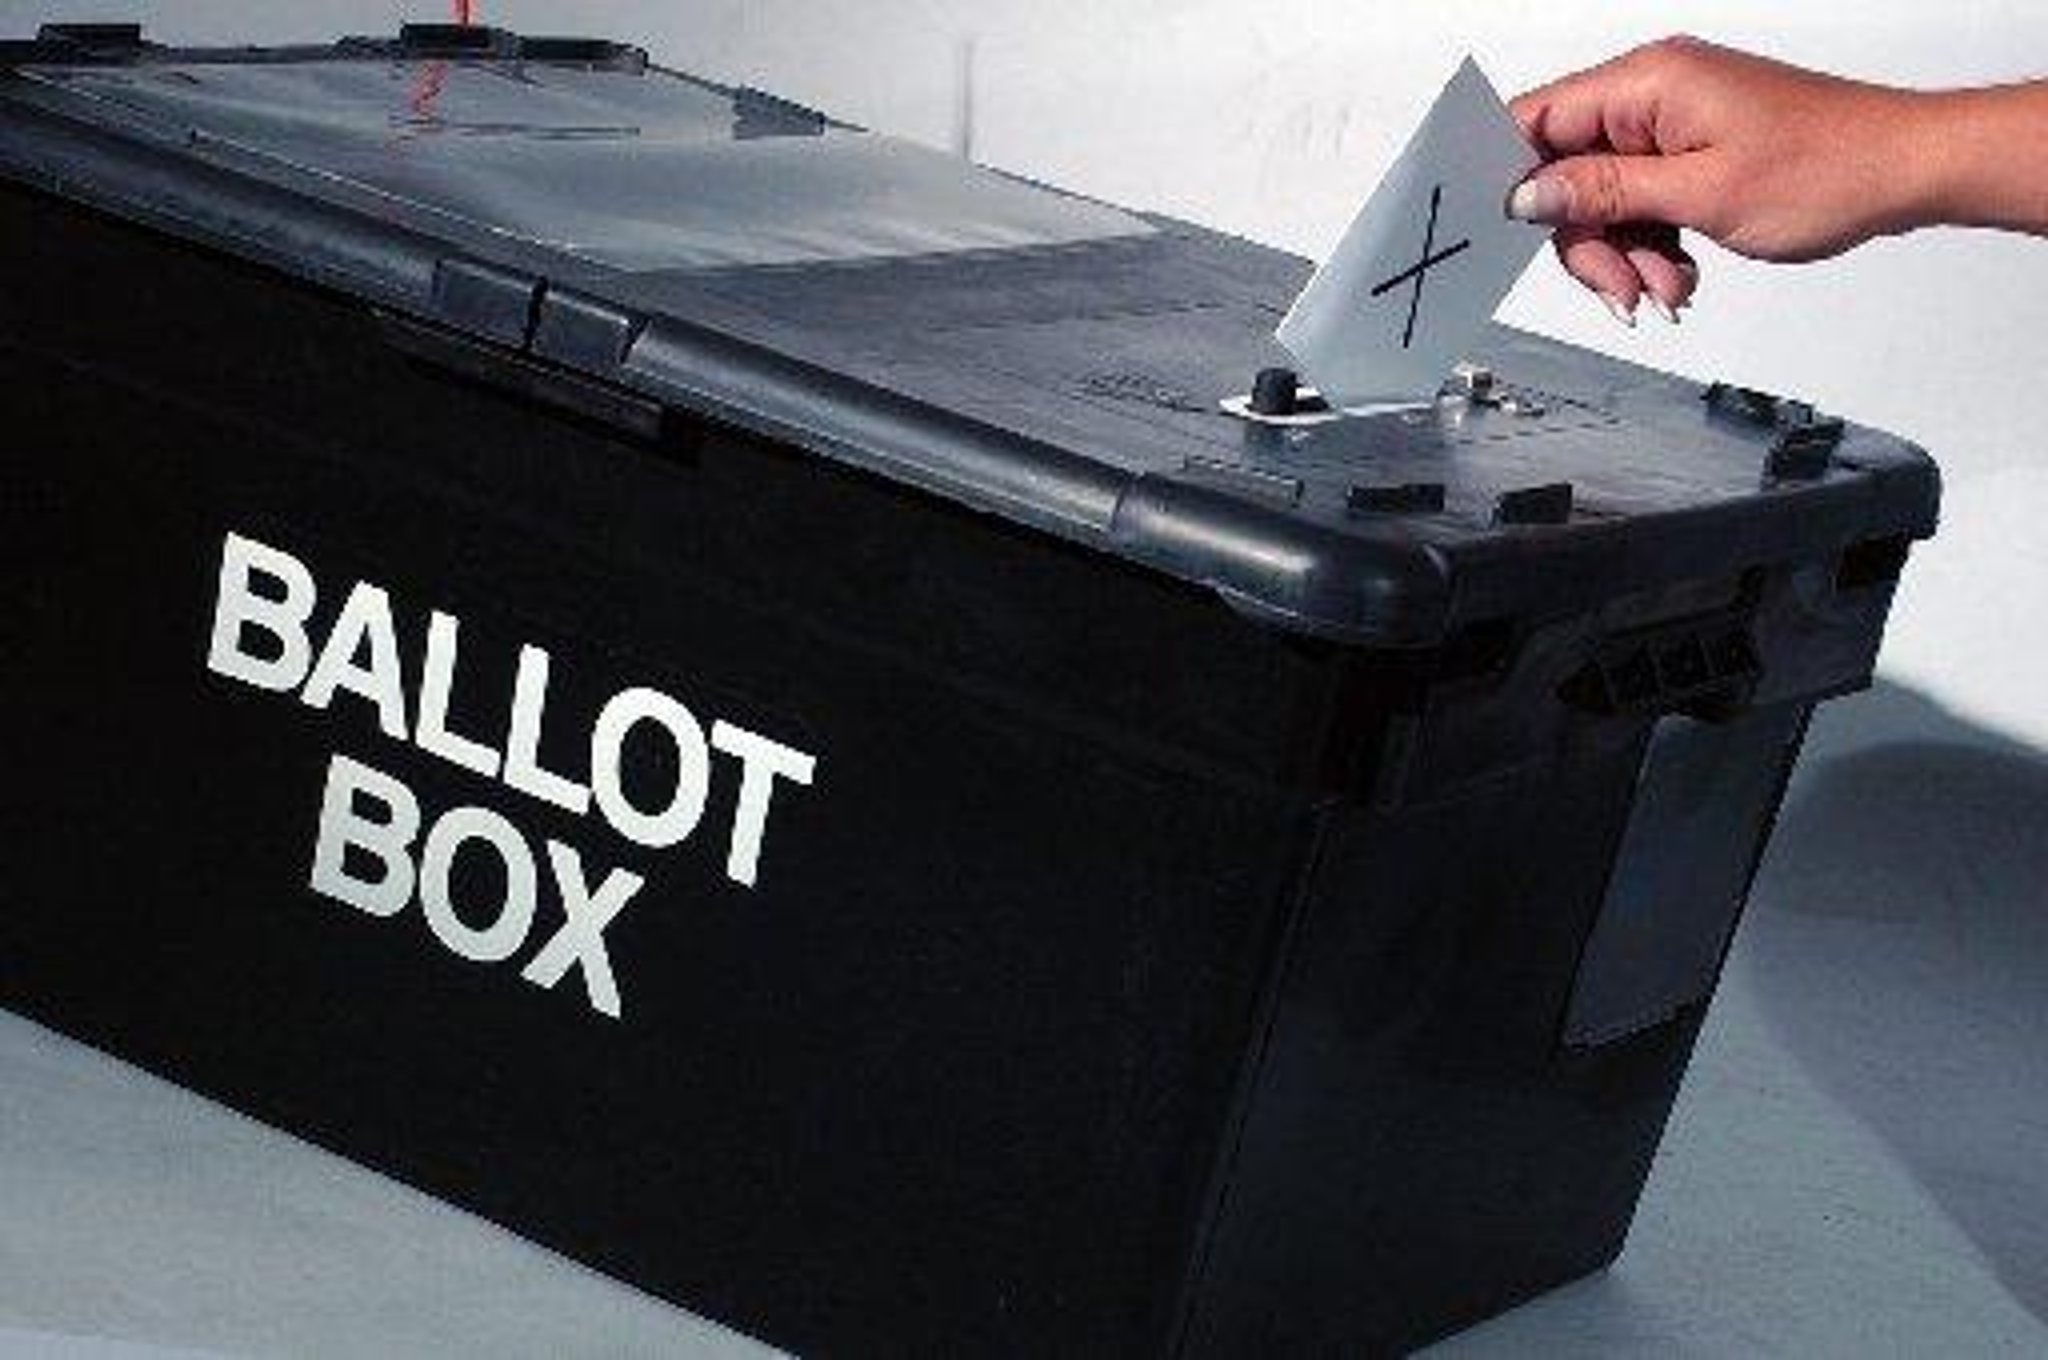 Scottish elections: These are the candidates standing in Falkirk East